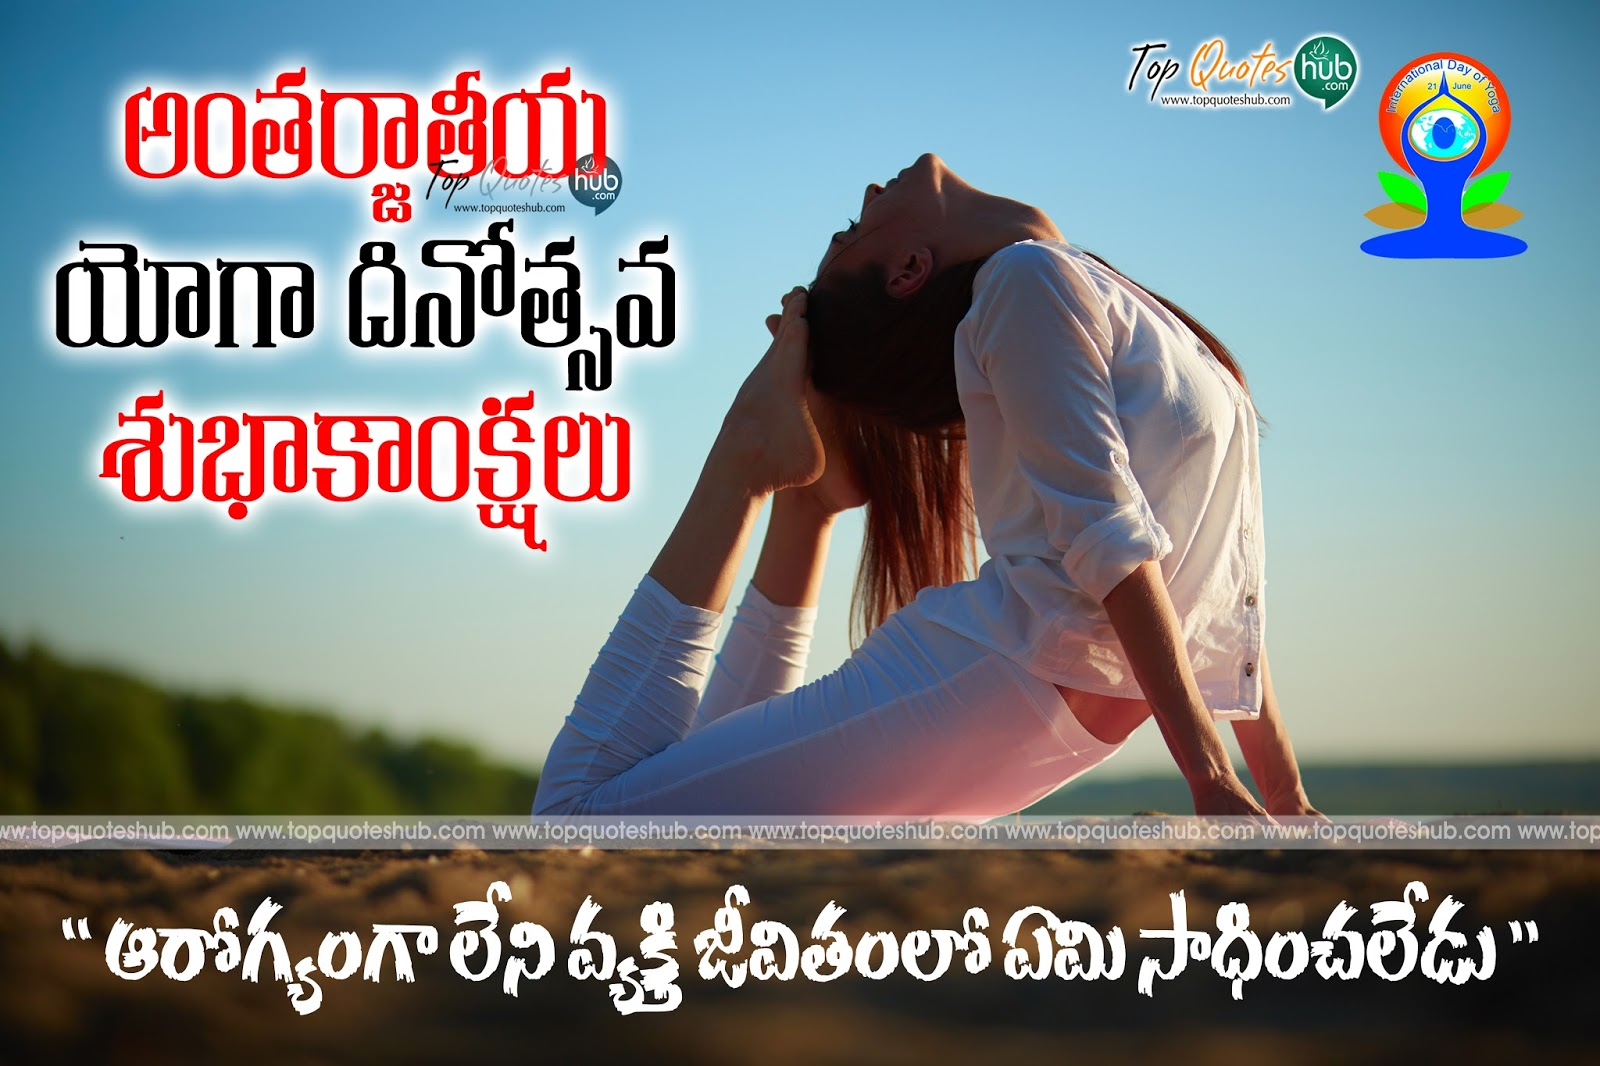 International Yoga Day Telugu Wishes Quotes Greetings Topquoteshub